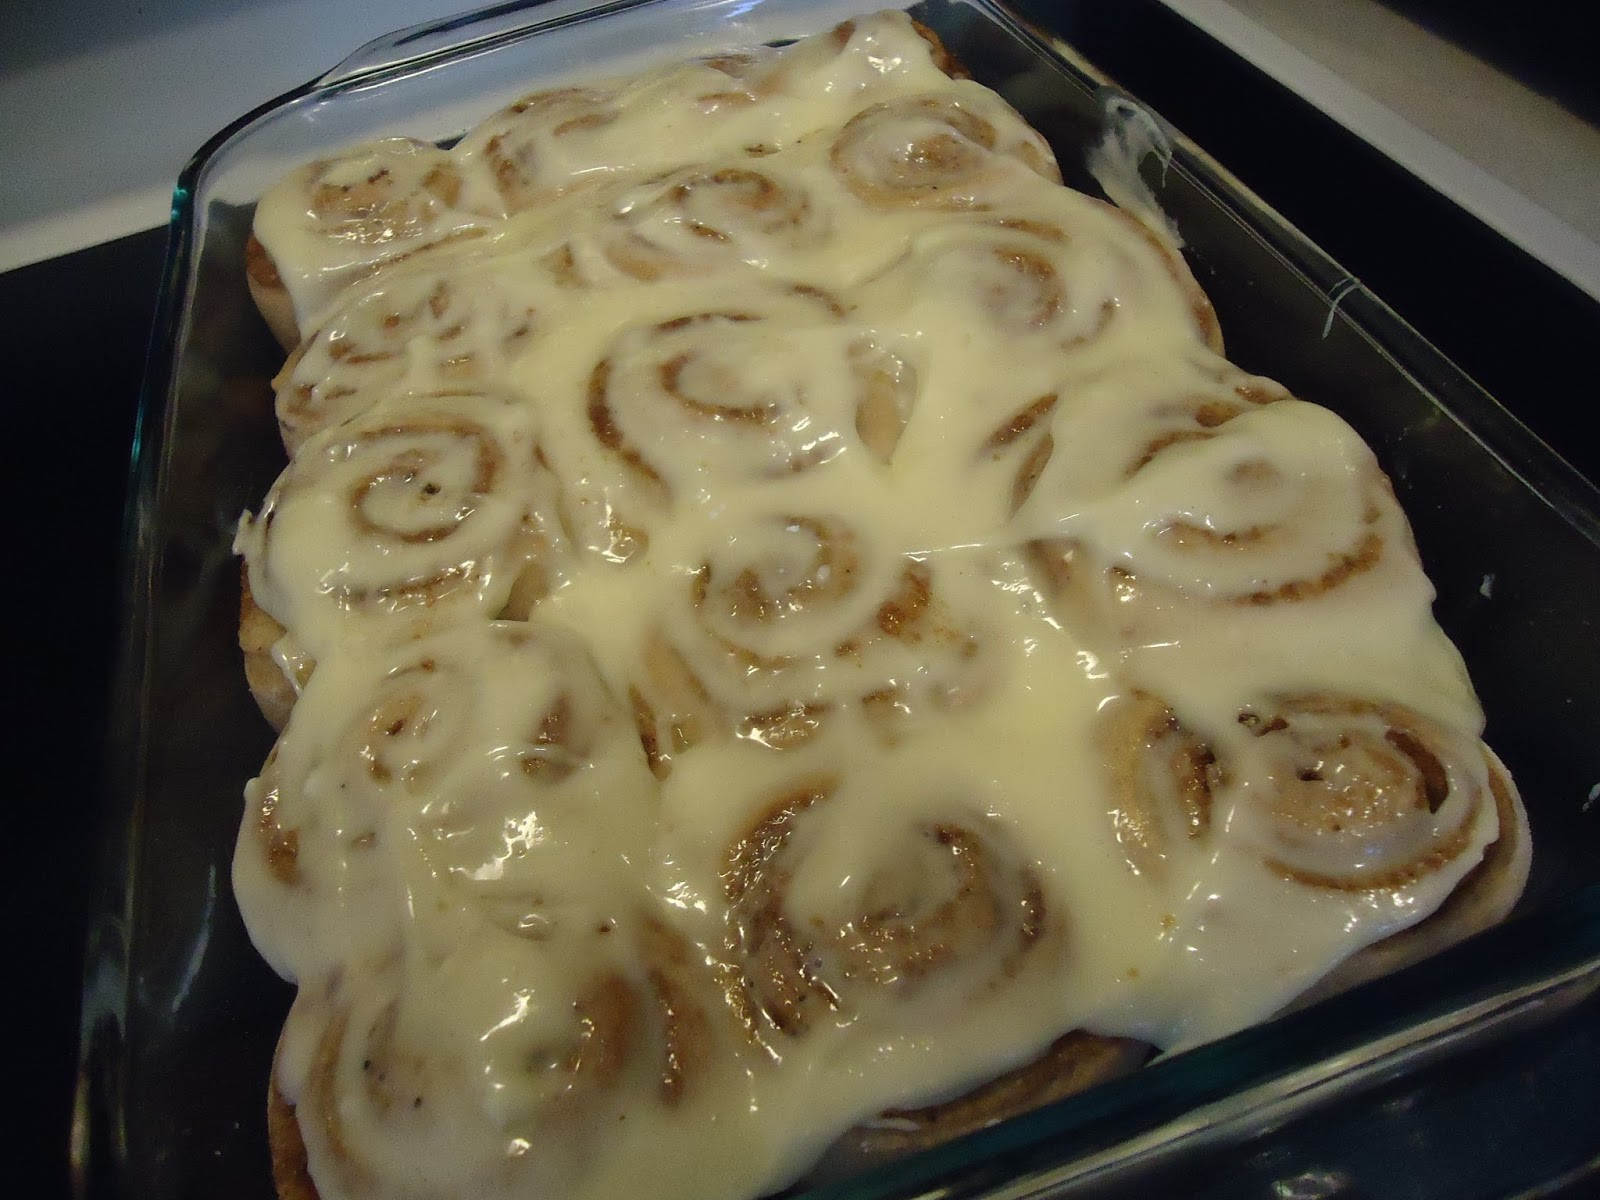 Pizza Dough Cinnamon Rolls  Thrifty Mom In Boise Pizza Dough Cinnamon Rolls